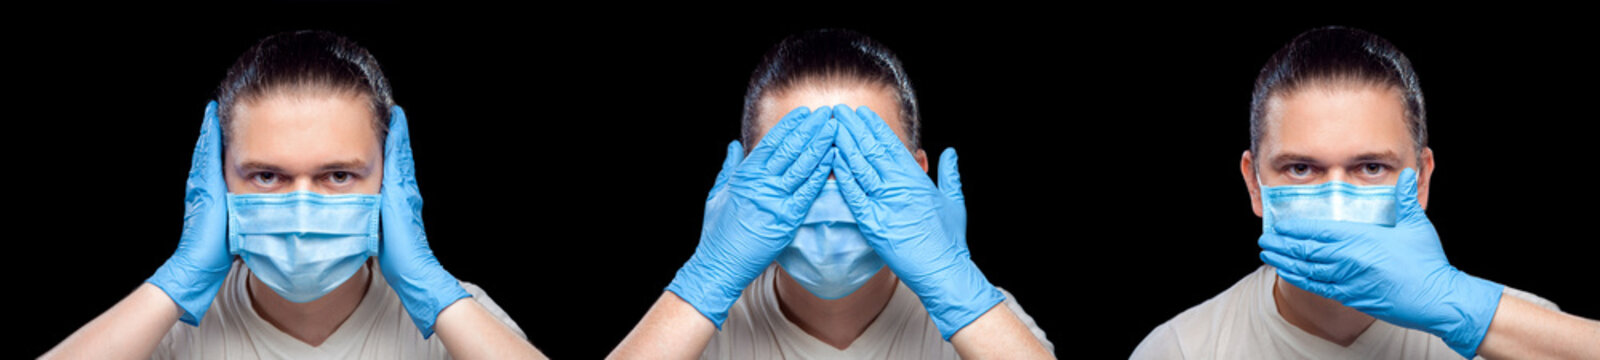 Blind deaf mute male portrait of a doctor in a medical mask and surgical gloves isolated on a black background, conceptual photo I don't hear anything, I see nothing, I will not say anything.